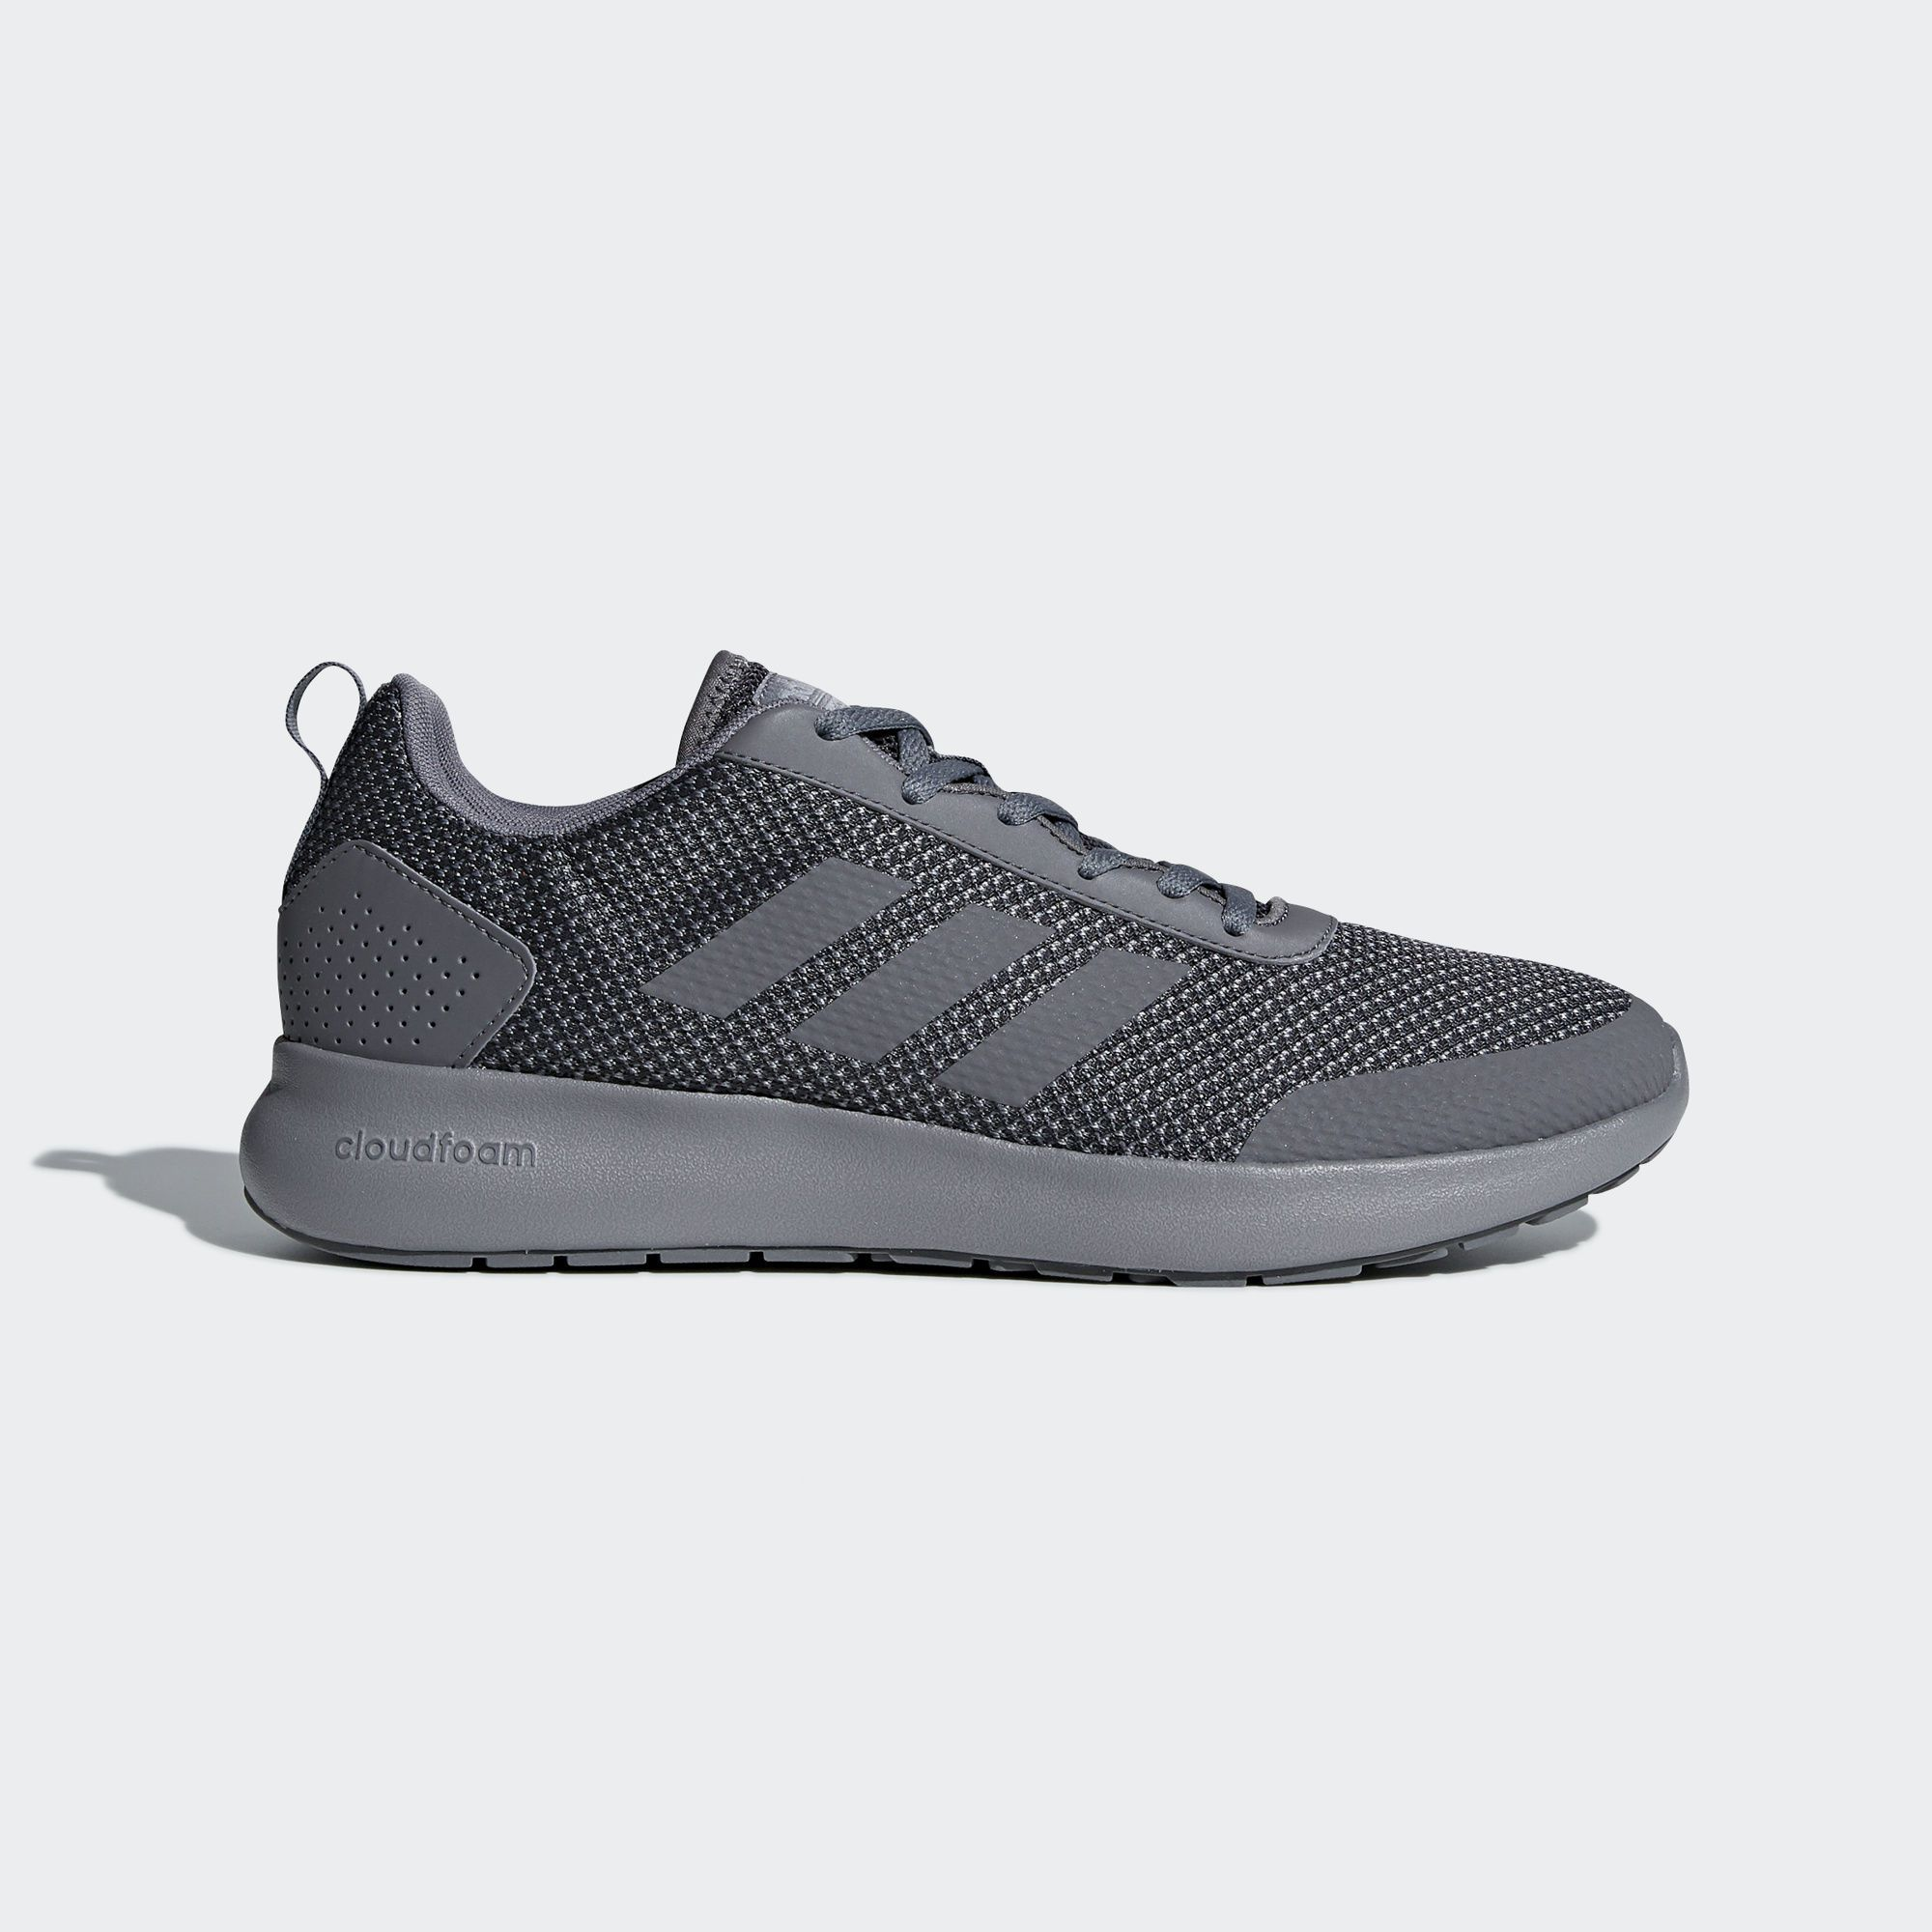 Element Race Schuhes Turnschuhe | Turnschuhe Schuhes | Pinterest | Adidas, Sneakers and Schuhes 0fa3fb